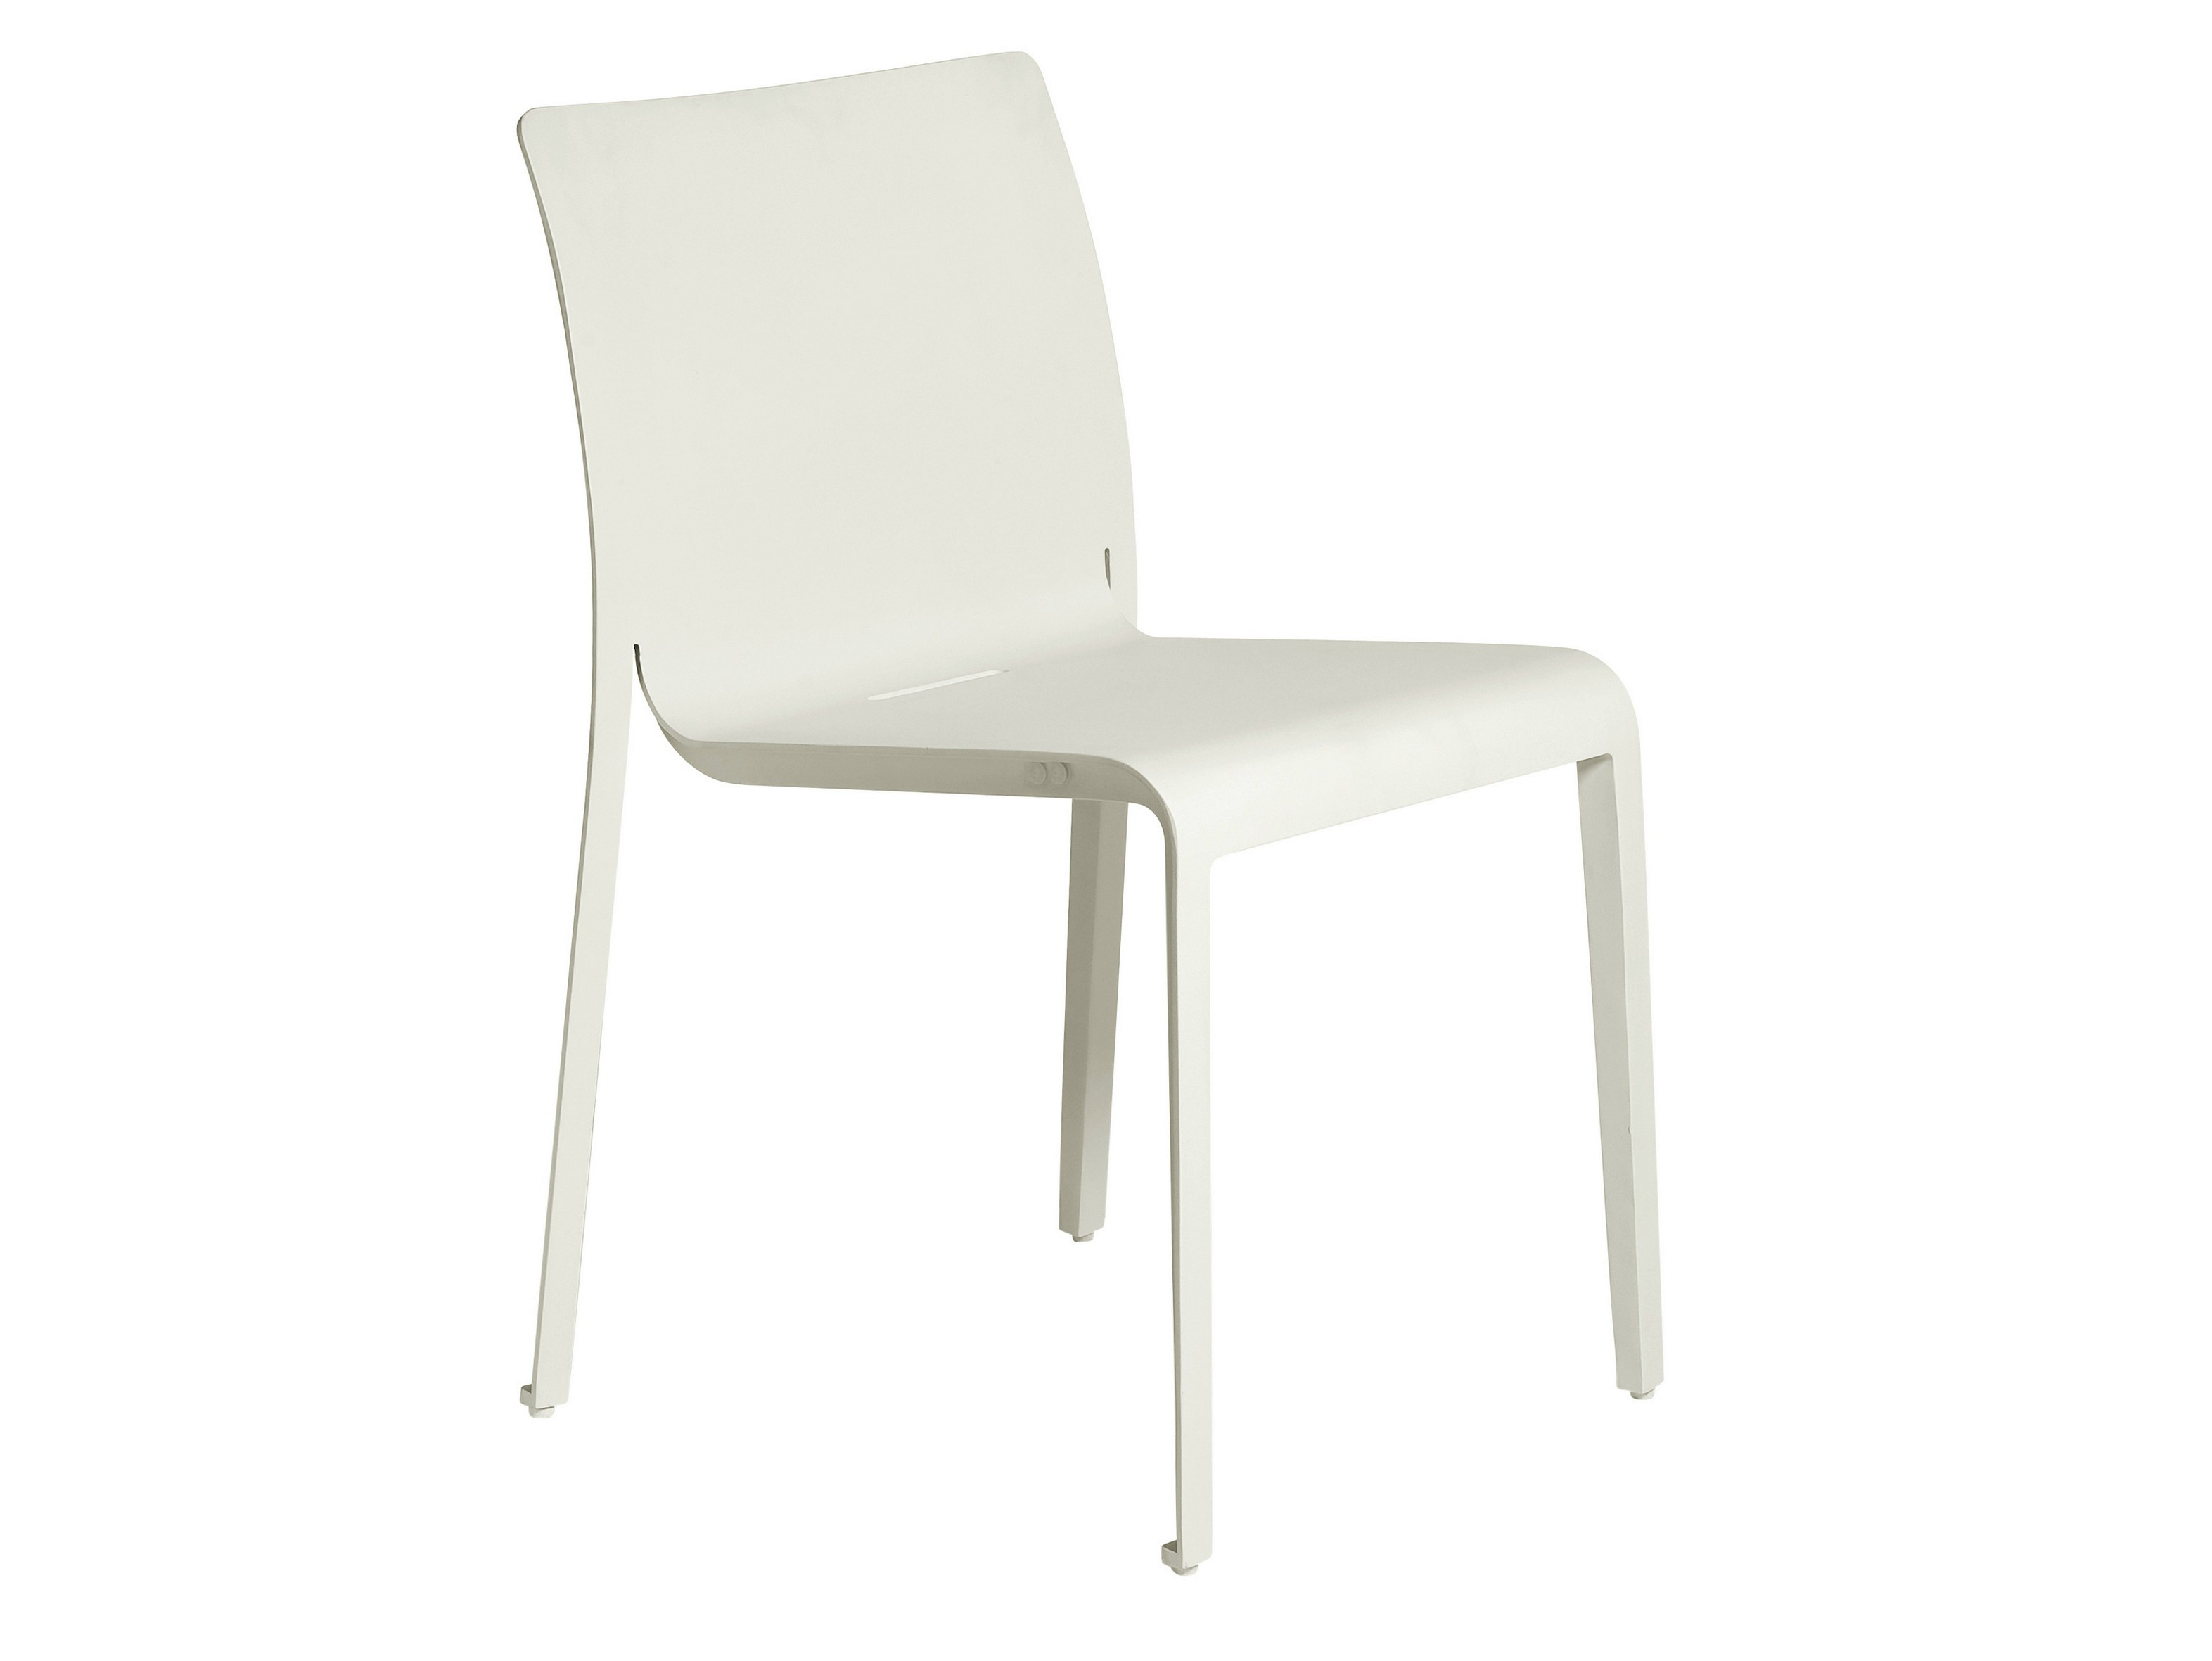 Chaise de jardin empilable en aluminium collection mirthe - Chaise de jardin en aluminium ...